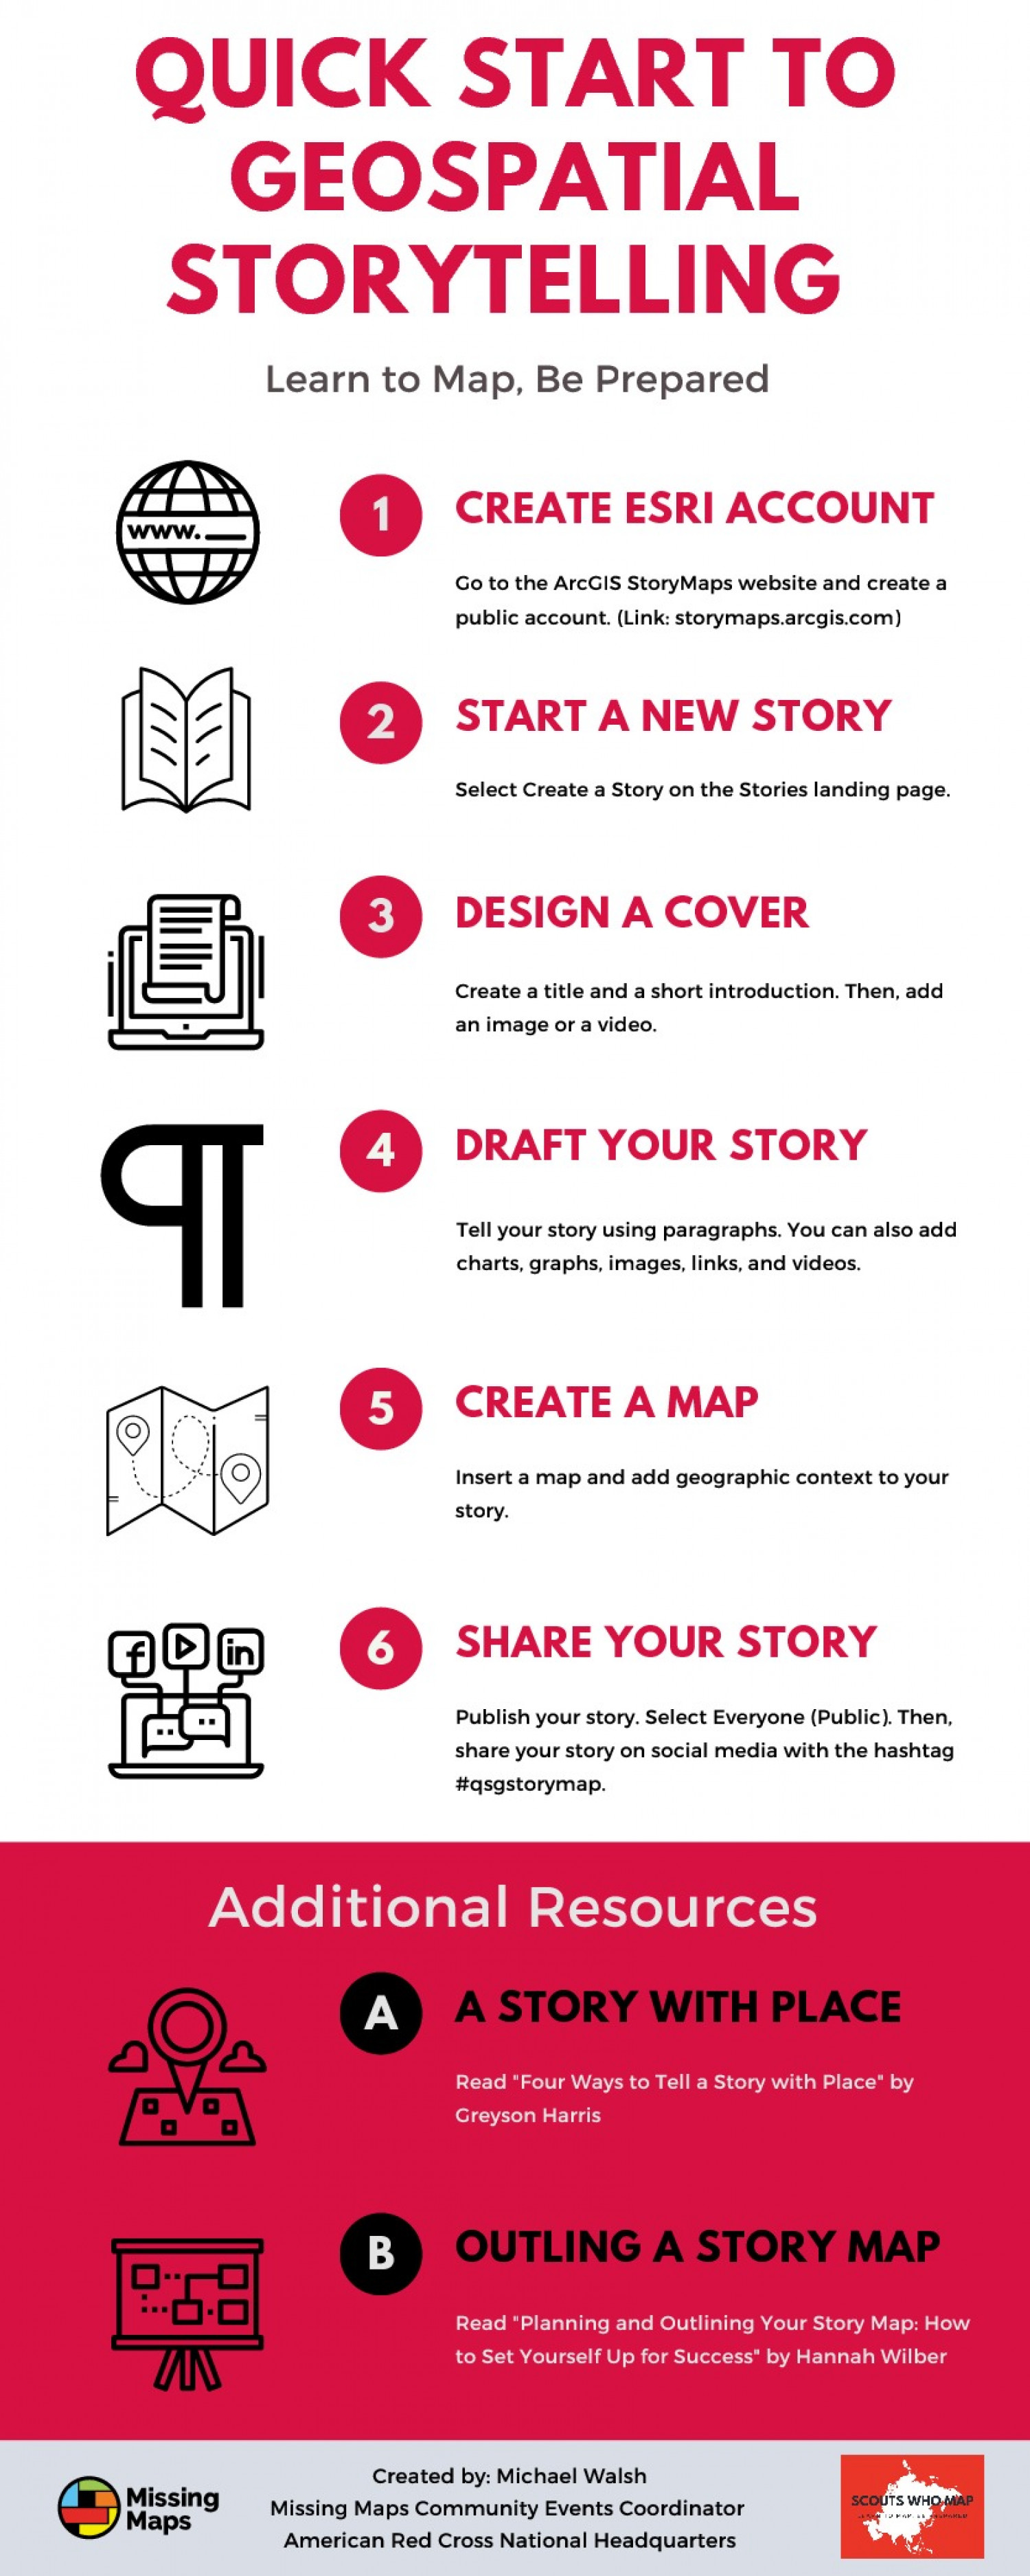 Quick Start to Geospatial Storytelling Infographic